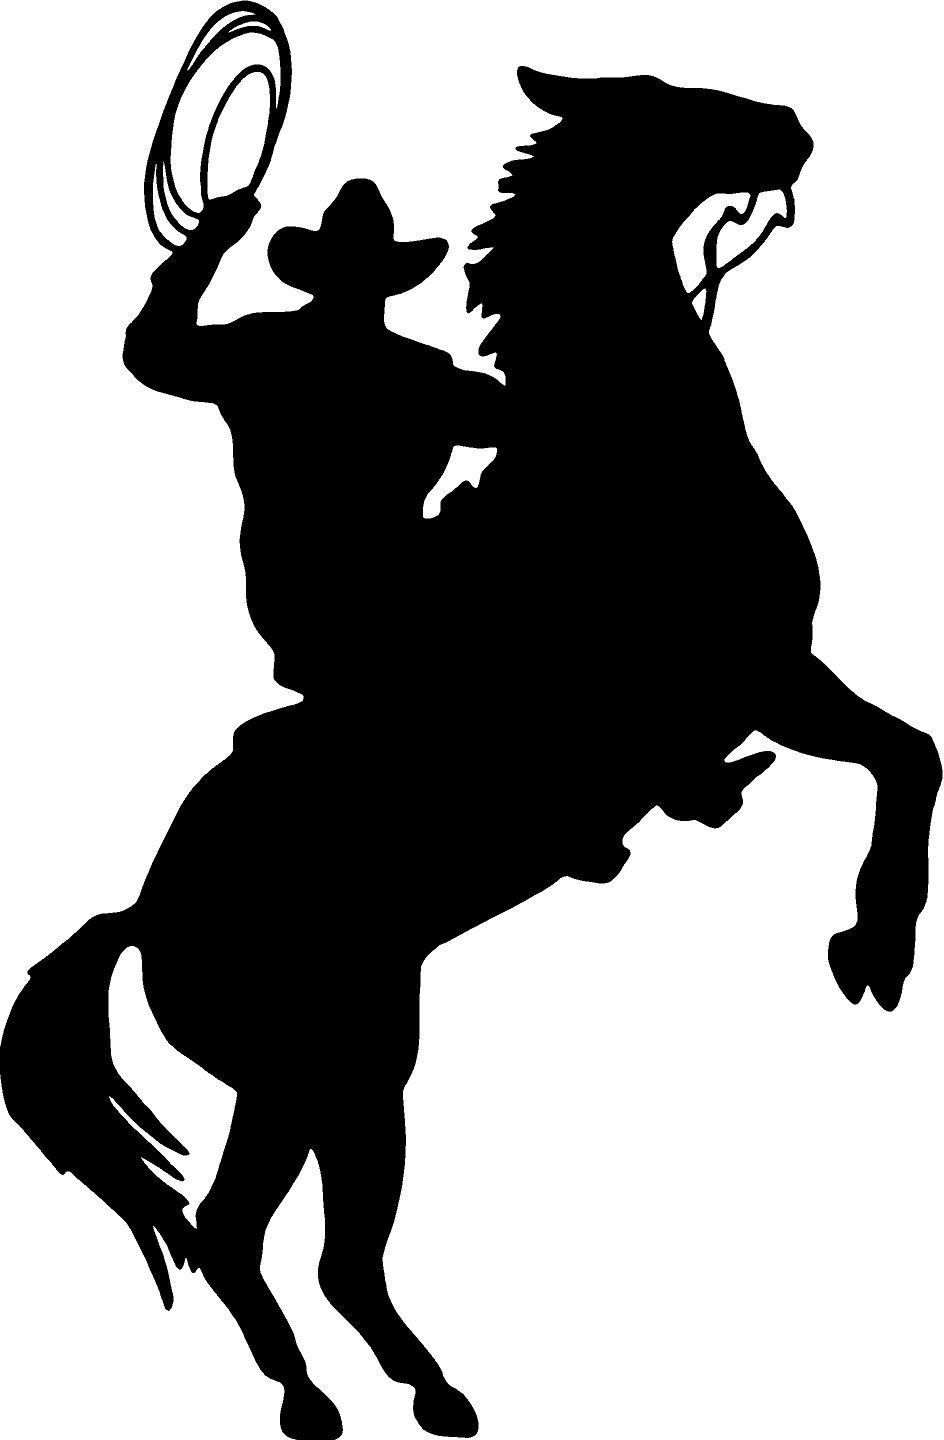 944x1440 Cowboy Horse Rider Western Wall Decal Home Decor Silhouette Large